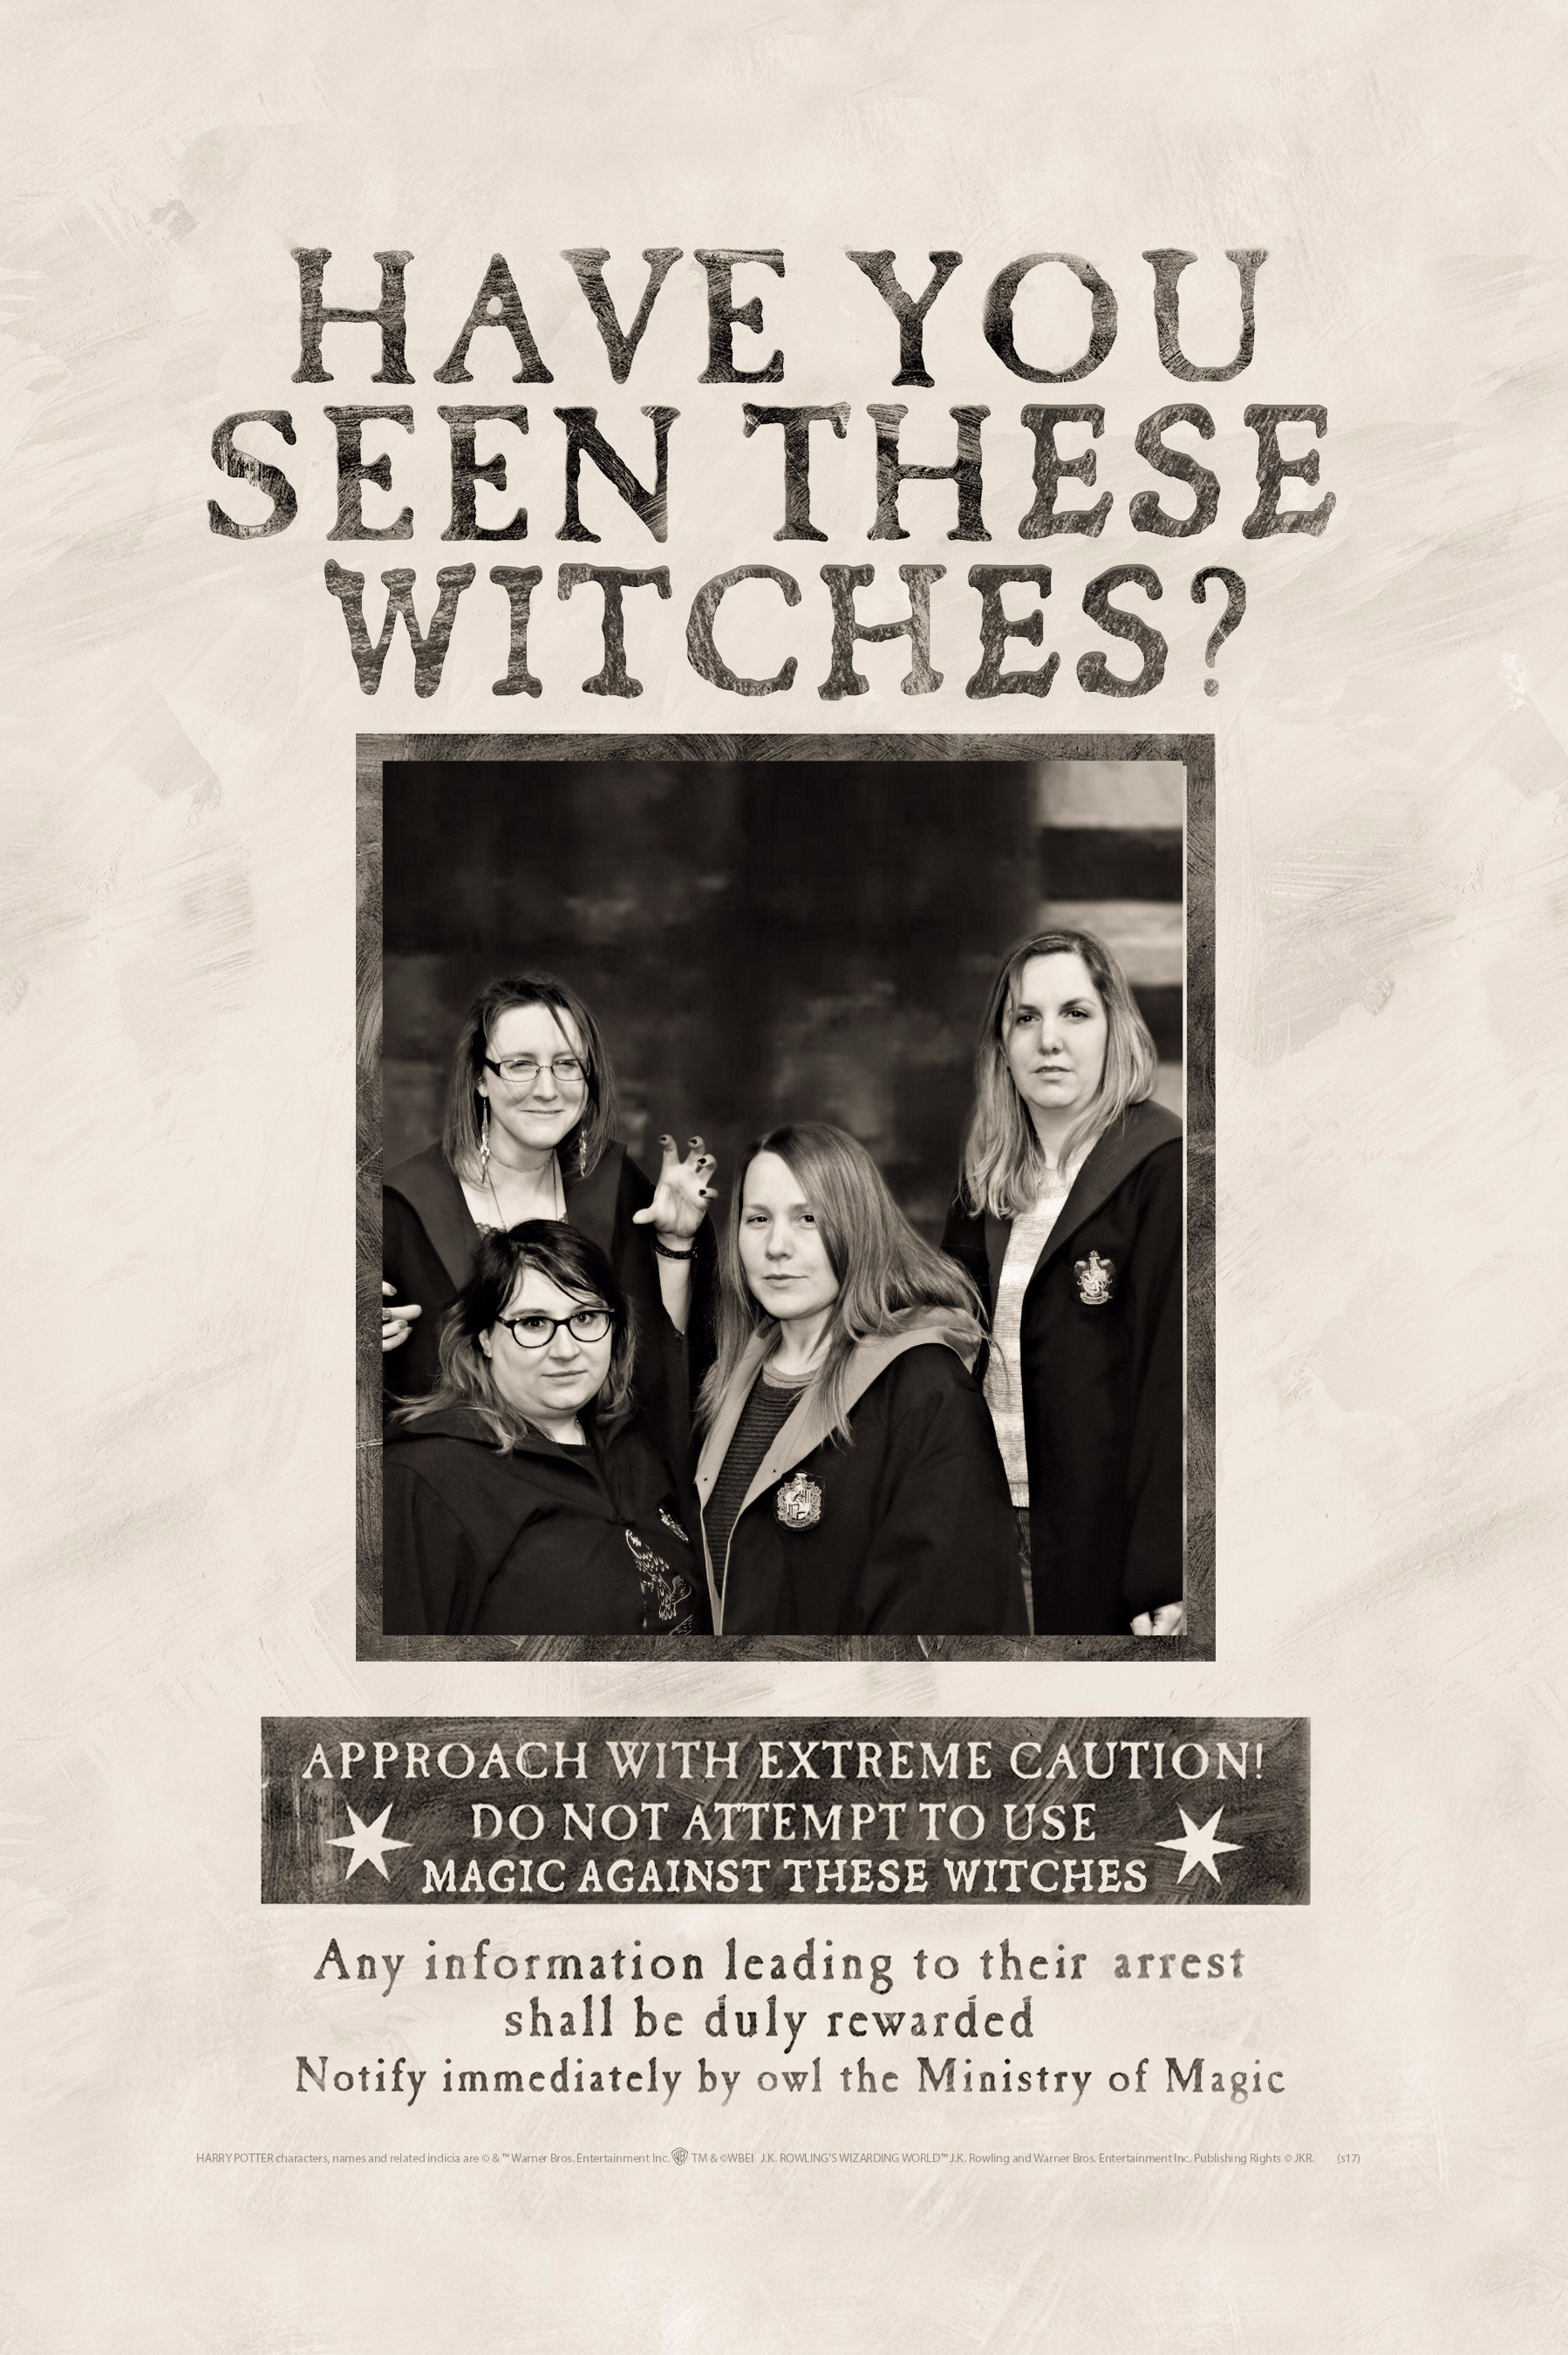 Have you seen these b*tches, I mean witches...